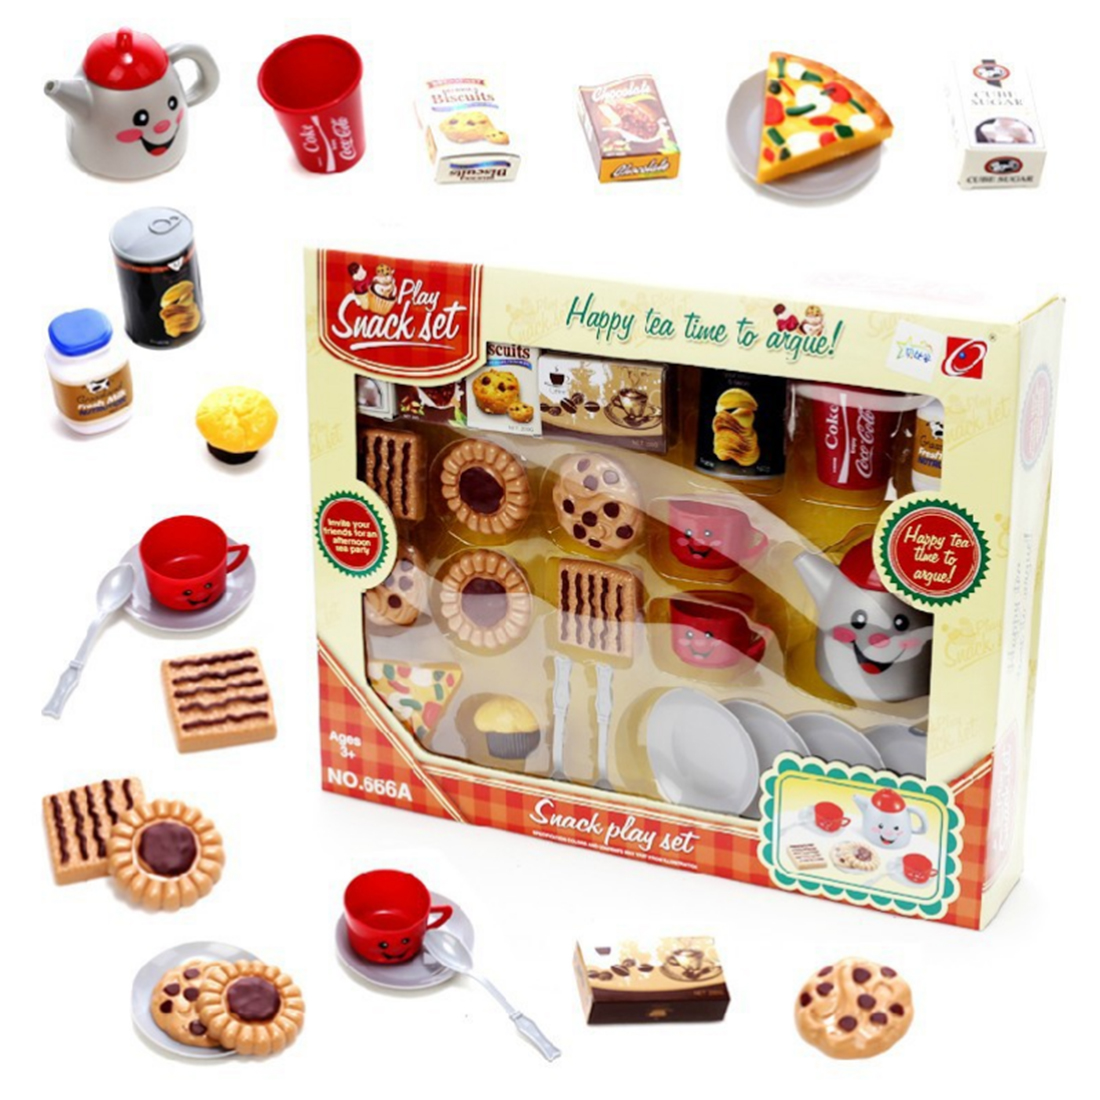 Kids Toys Simulation Biscuits Pizza Afternoon Tea Mix Set Wooden Toys Kids Pretend Play Food Toys Chriatmas Gift For Girls